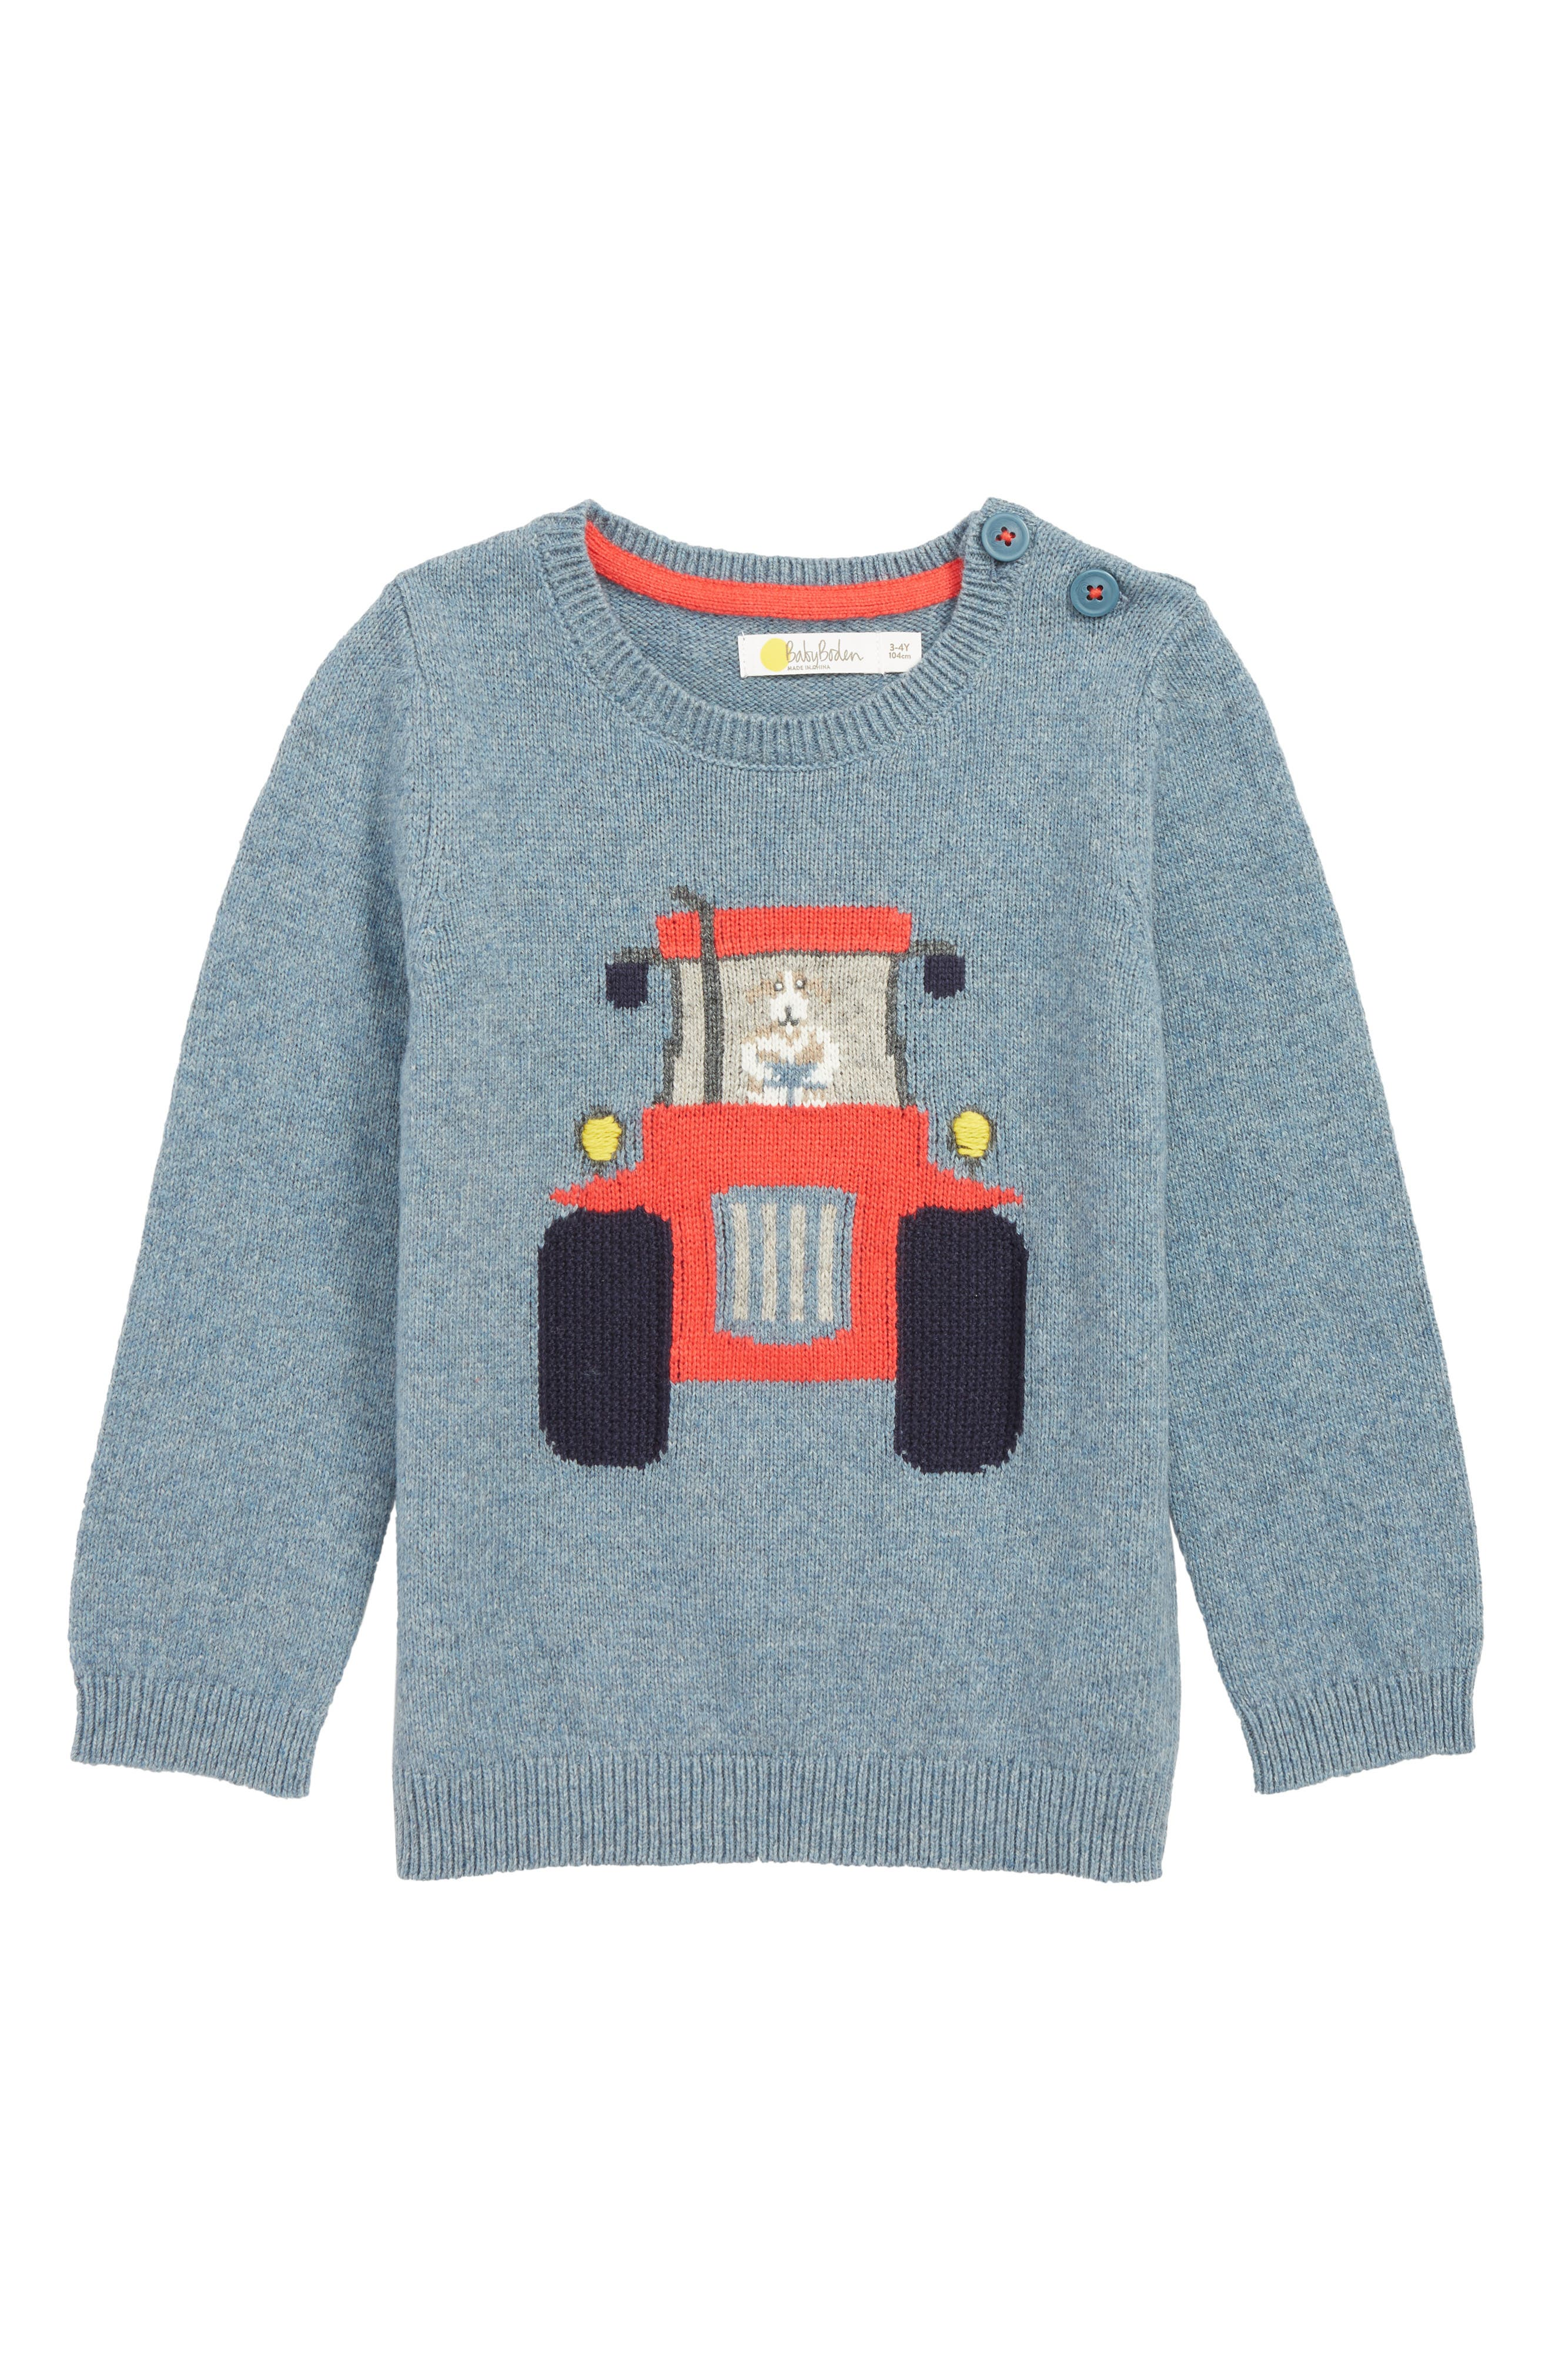 Toddler Boys Mini Boden Fun Sweater Size 34Y  Blue